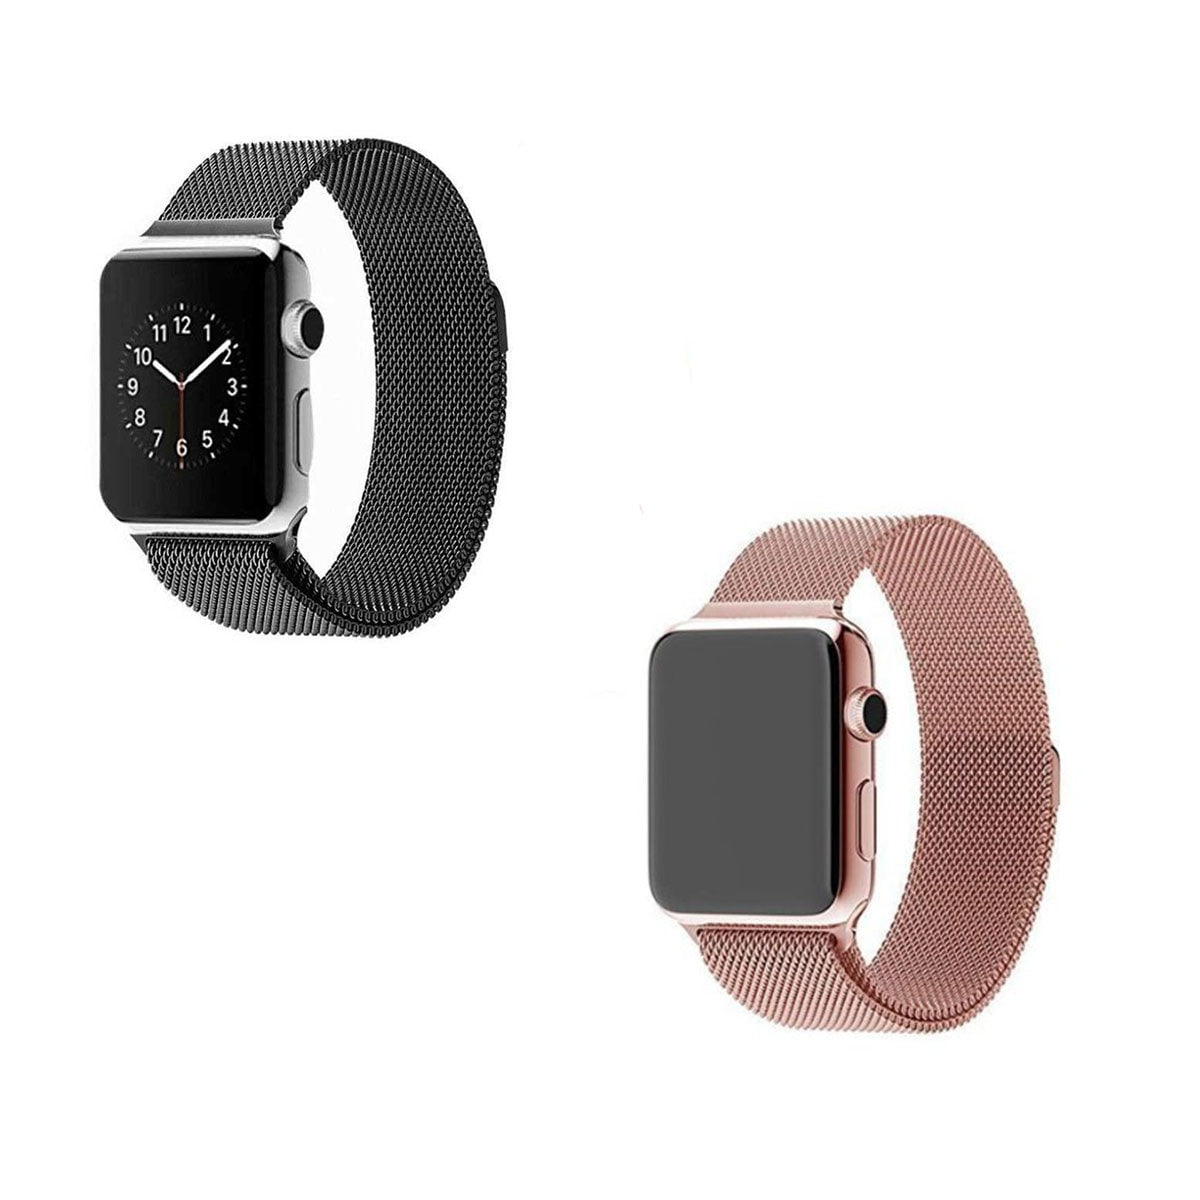 Fashion Bohemian Leather Loop Watchband for iwatch bands